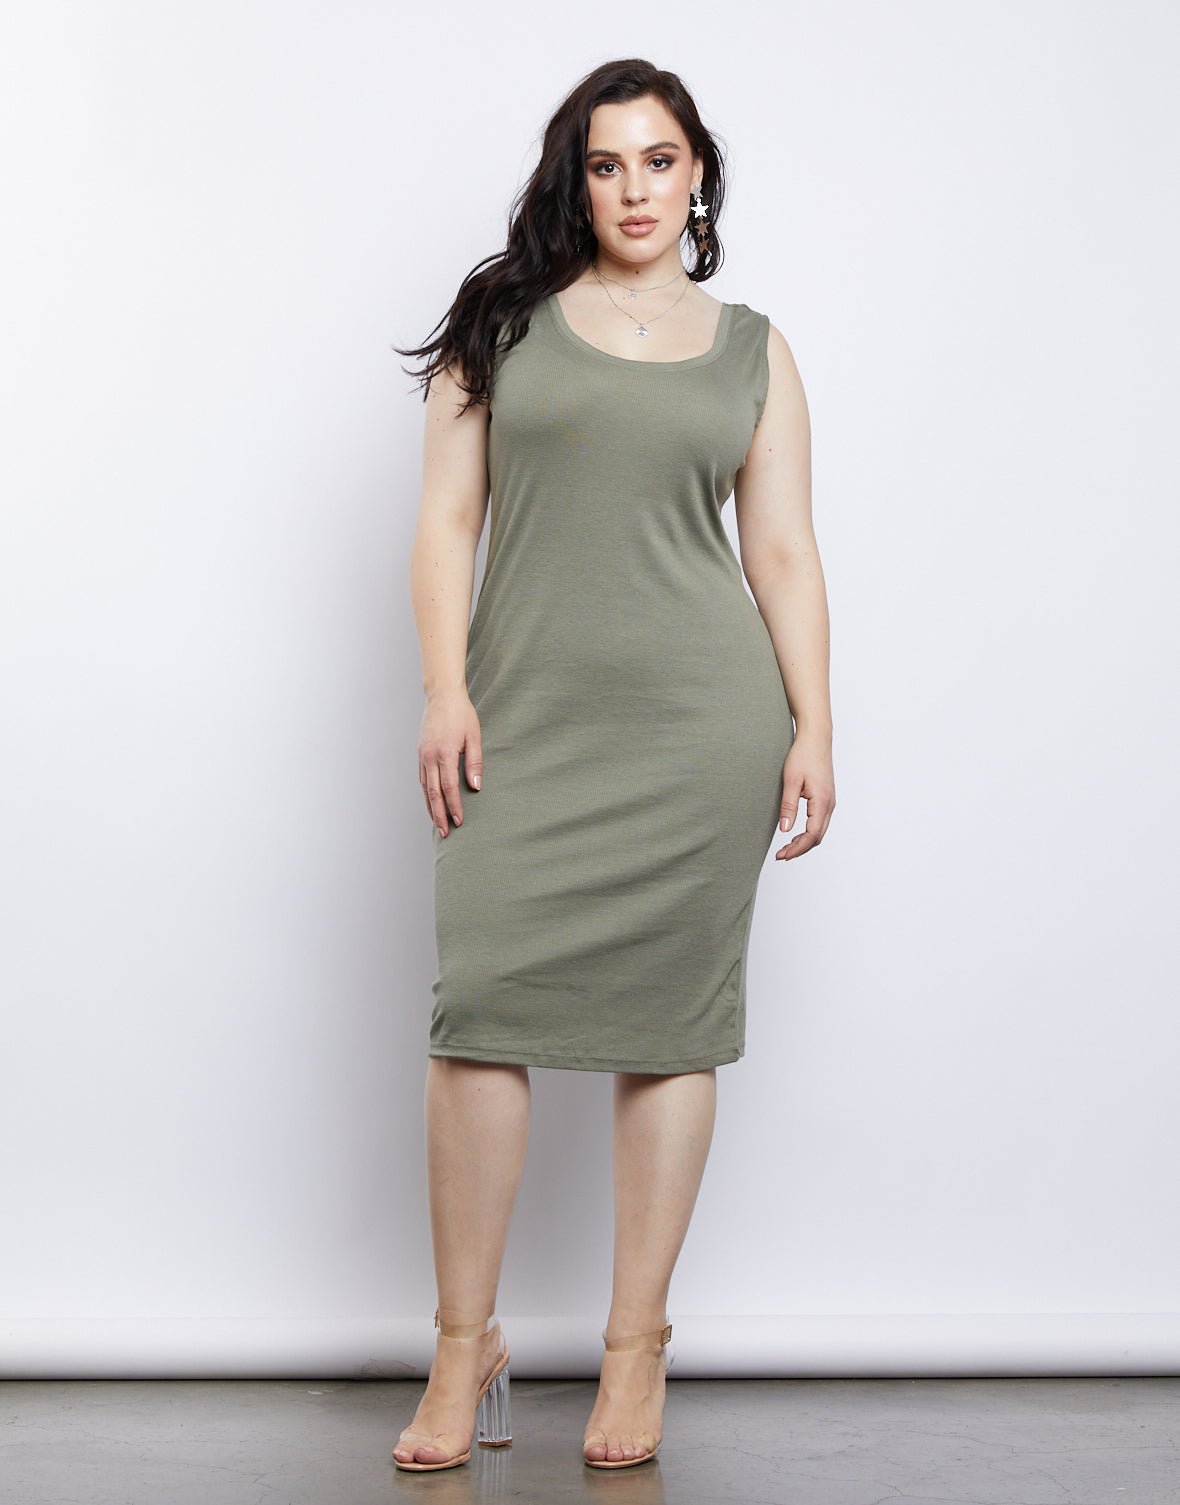 Plus Size California Girl Ribbed Tank Dress